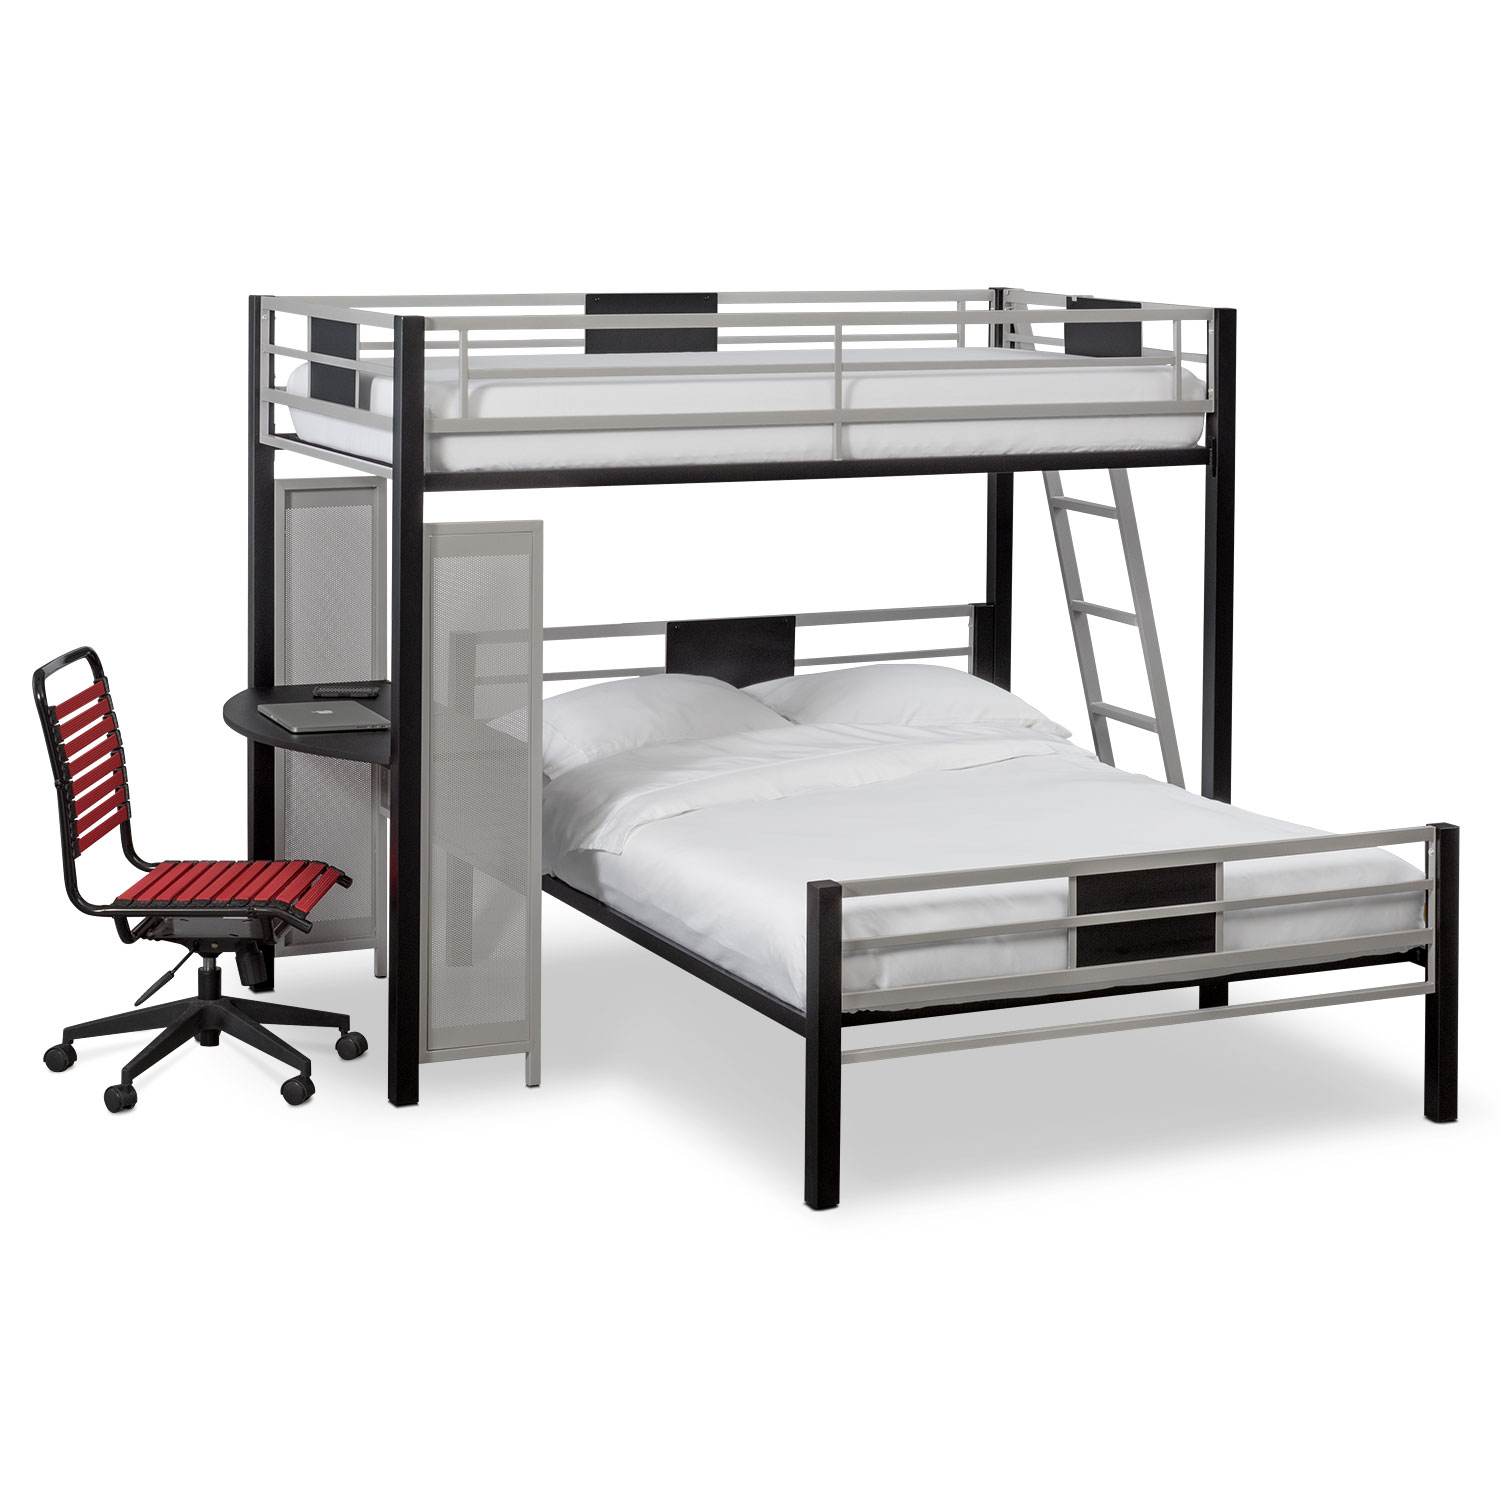 Bedroom Furniture - Samba Youth Twin/Full Loft Bed with Desk - Matte Black